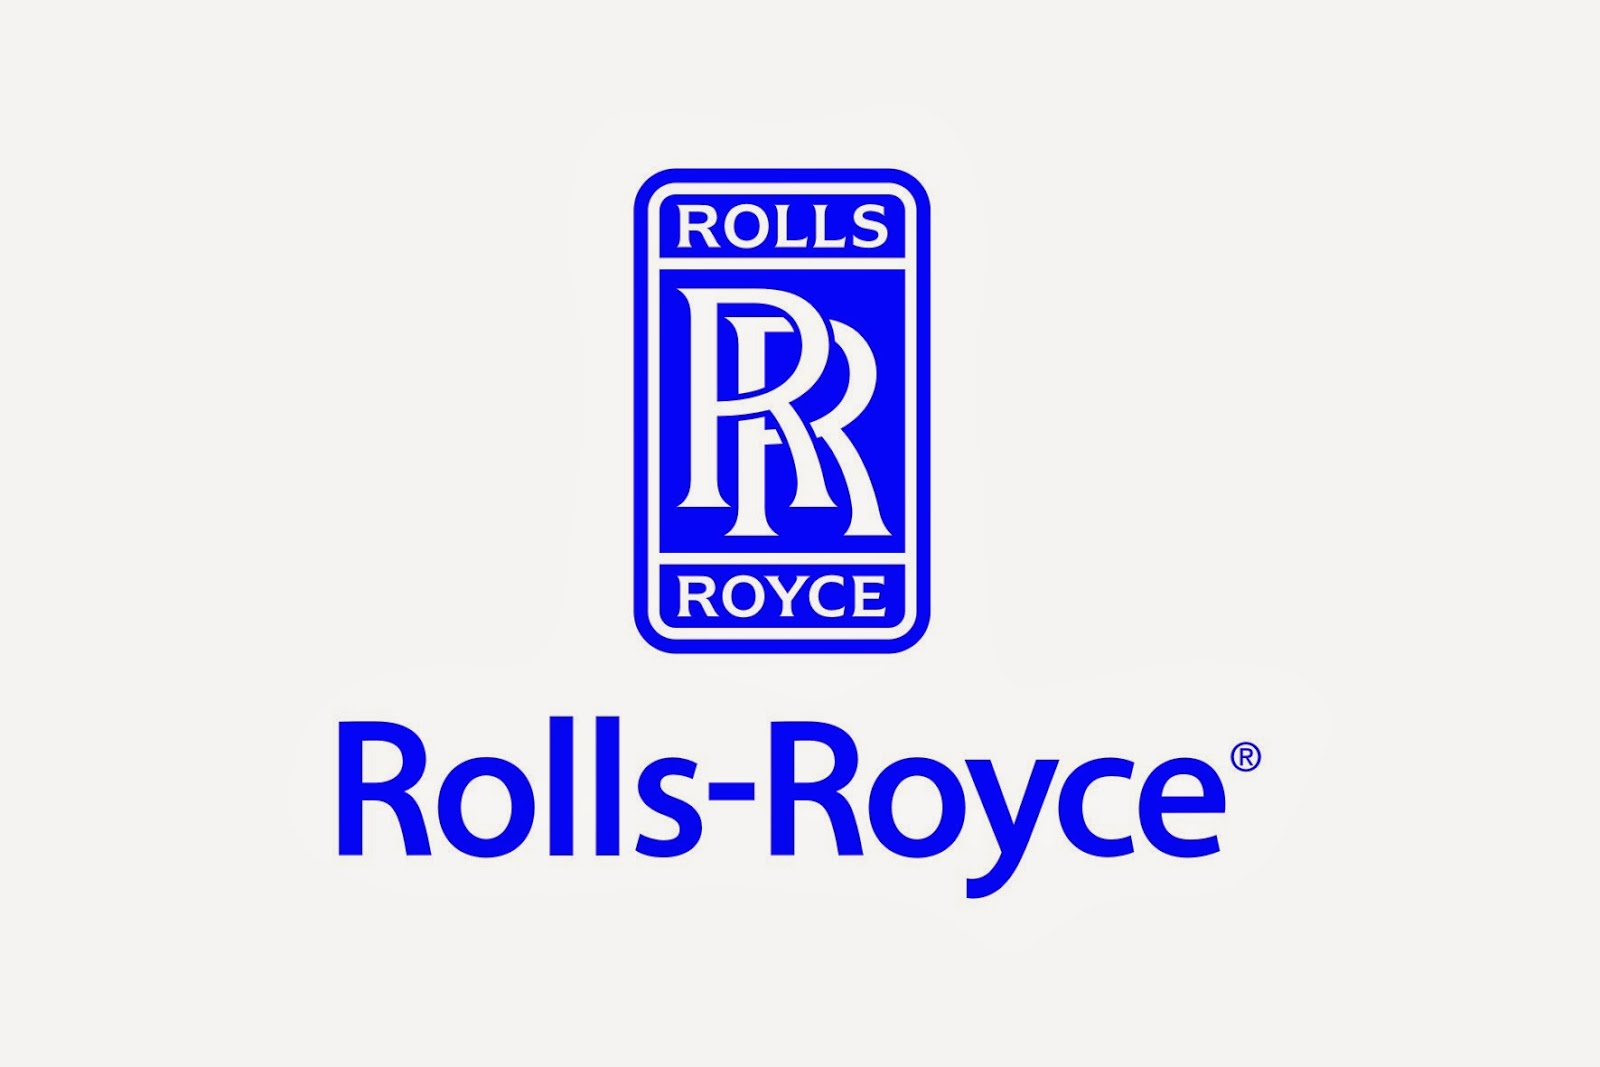 rolls royce logo logo share. Black Bedroom Furniture Sets. Home Design Ideas